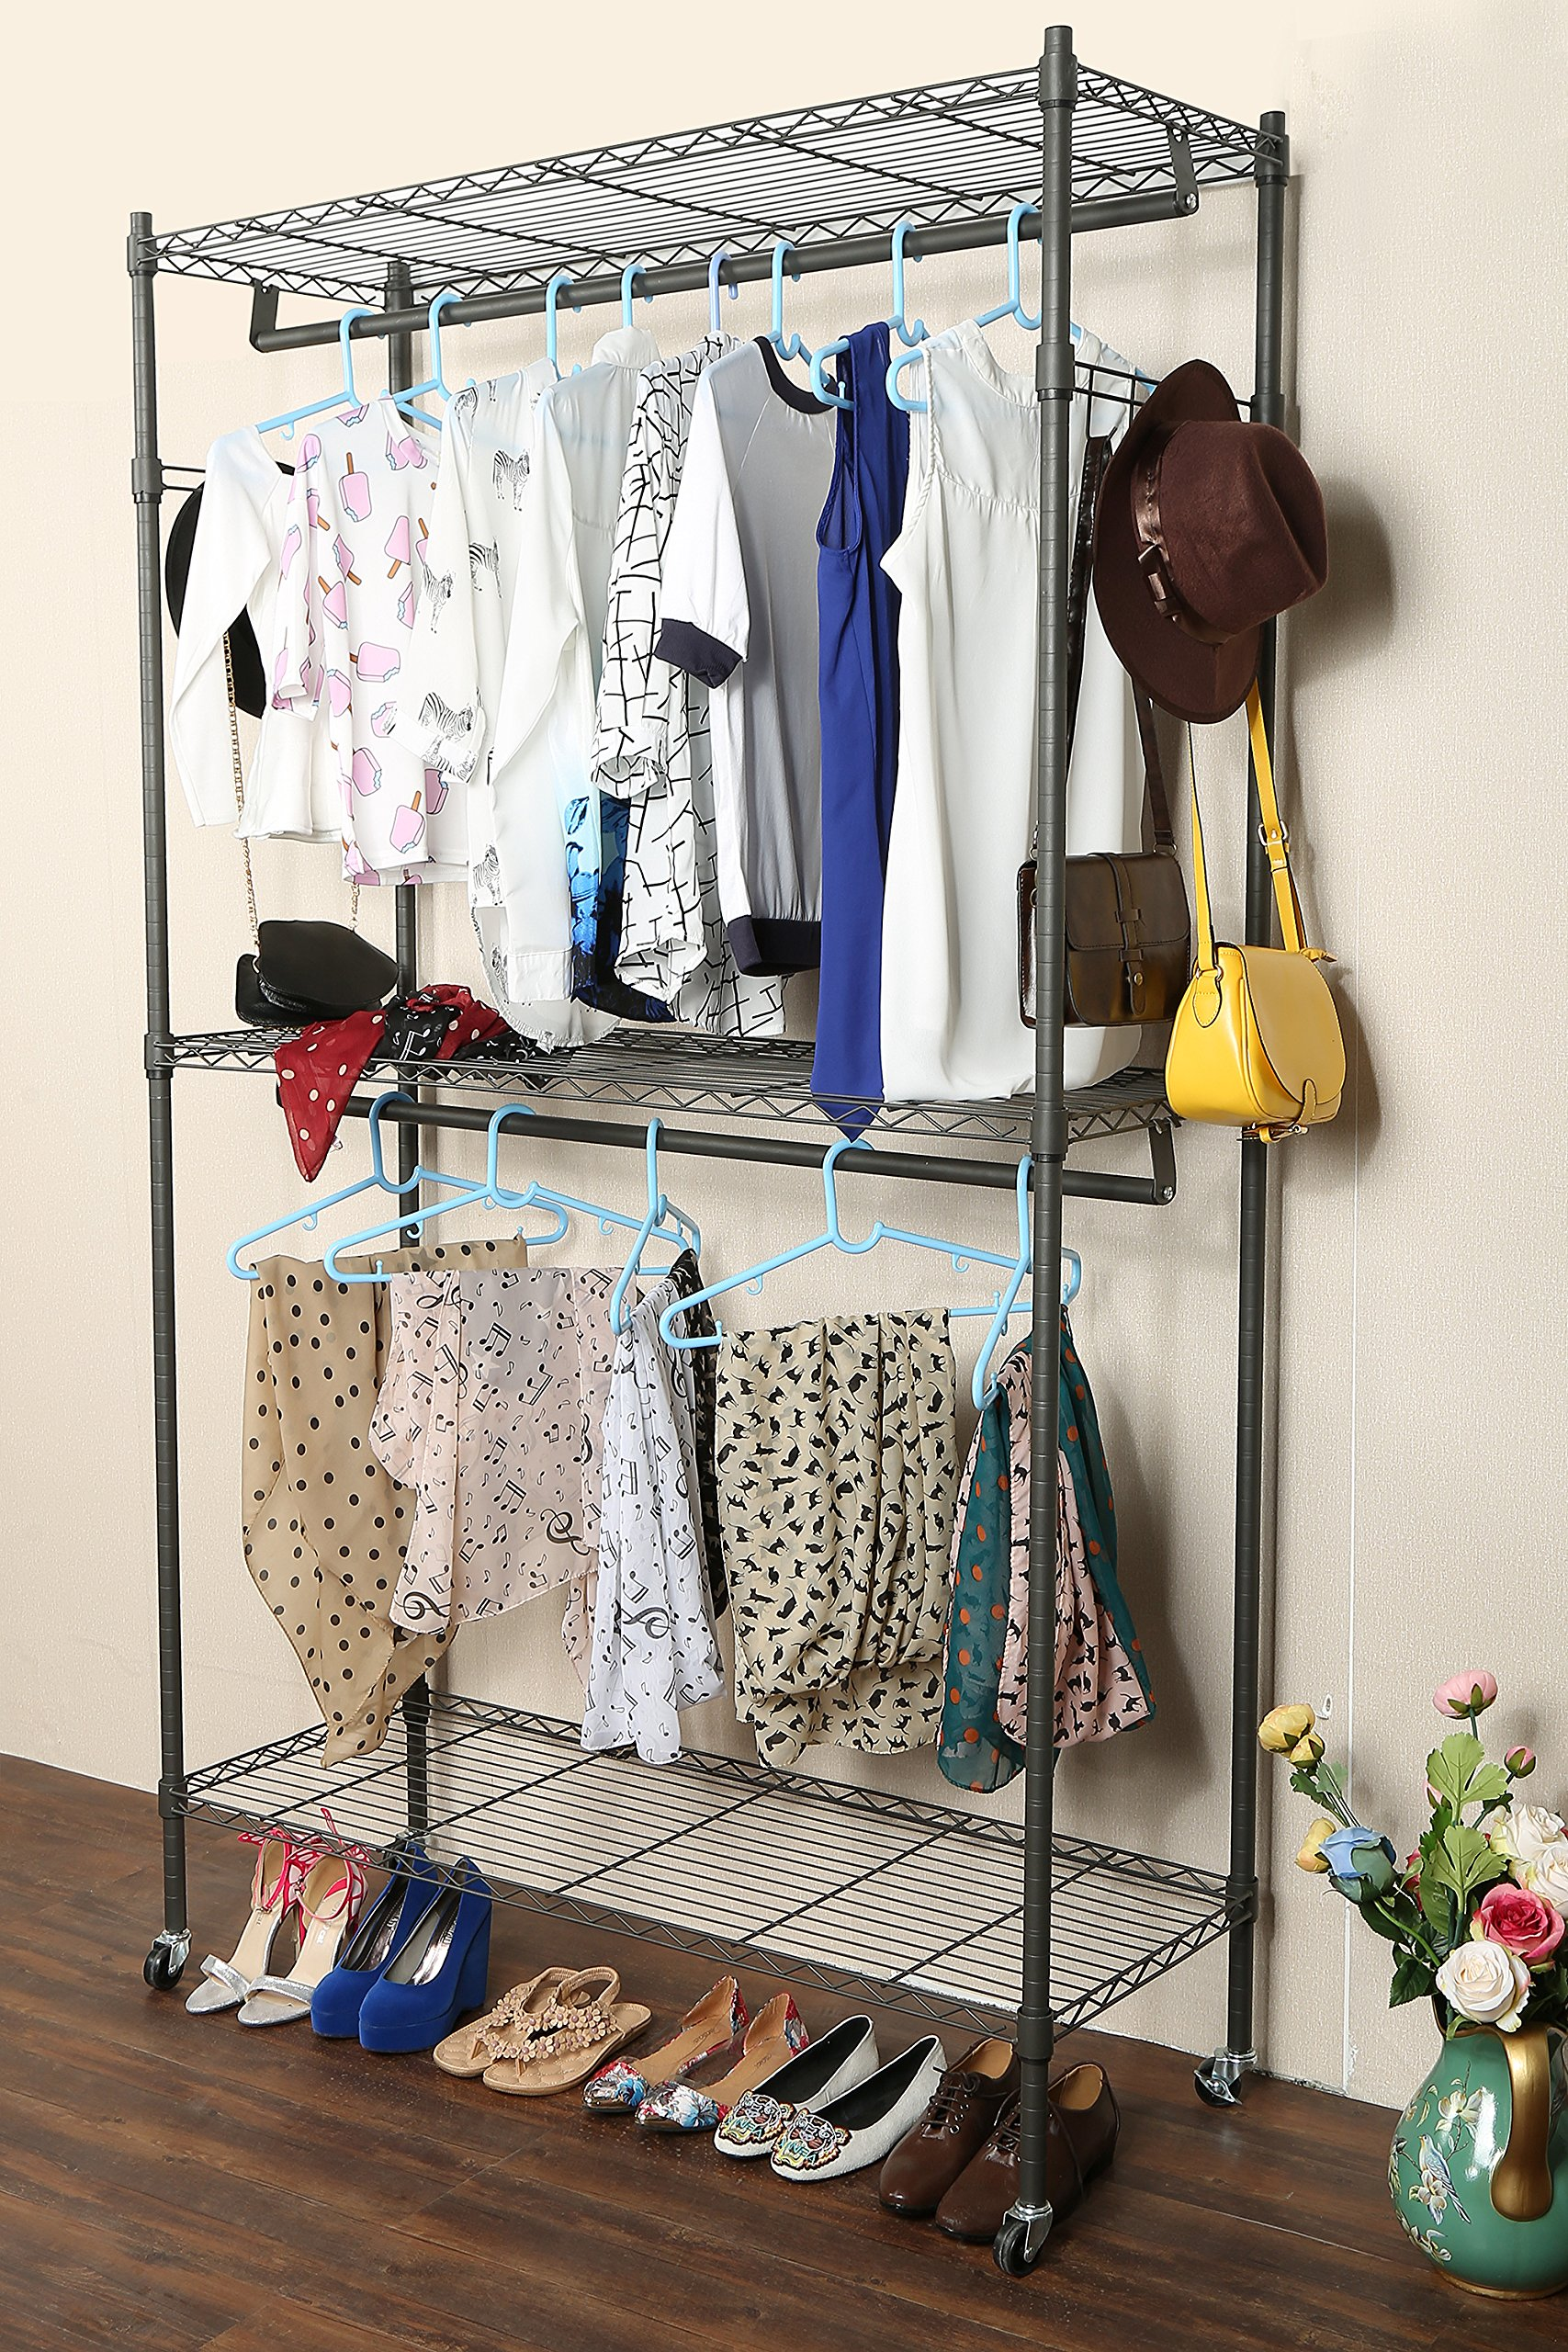 bedroom duty built storage laundry portable with sets full shelves hanging furn support organizer in closet of racks size shelf rod large and heavy furniture white